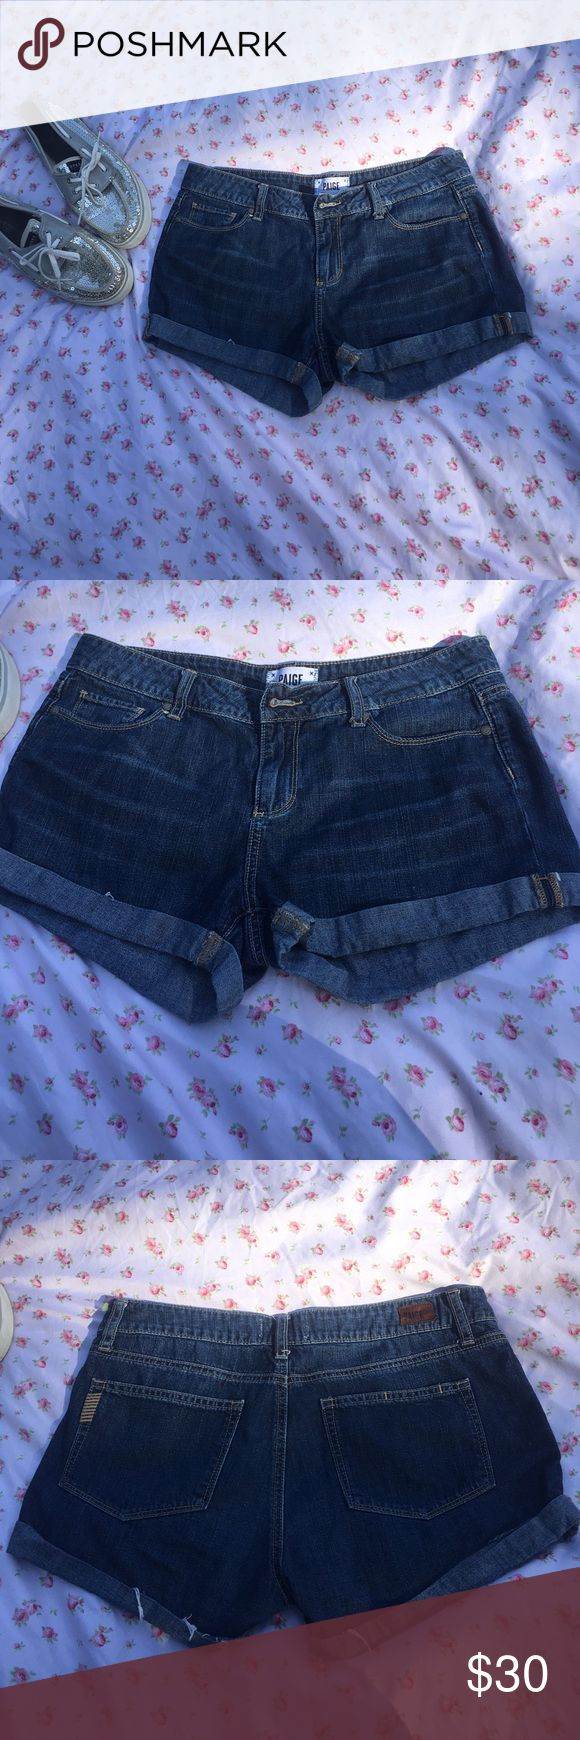 Paige jimmy jimmy shorts Excellent condition denim shorts! Cuffed hem. PAIGE Shorts Jean Shorts